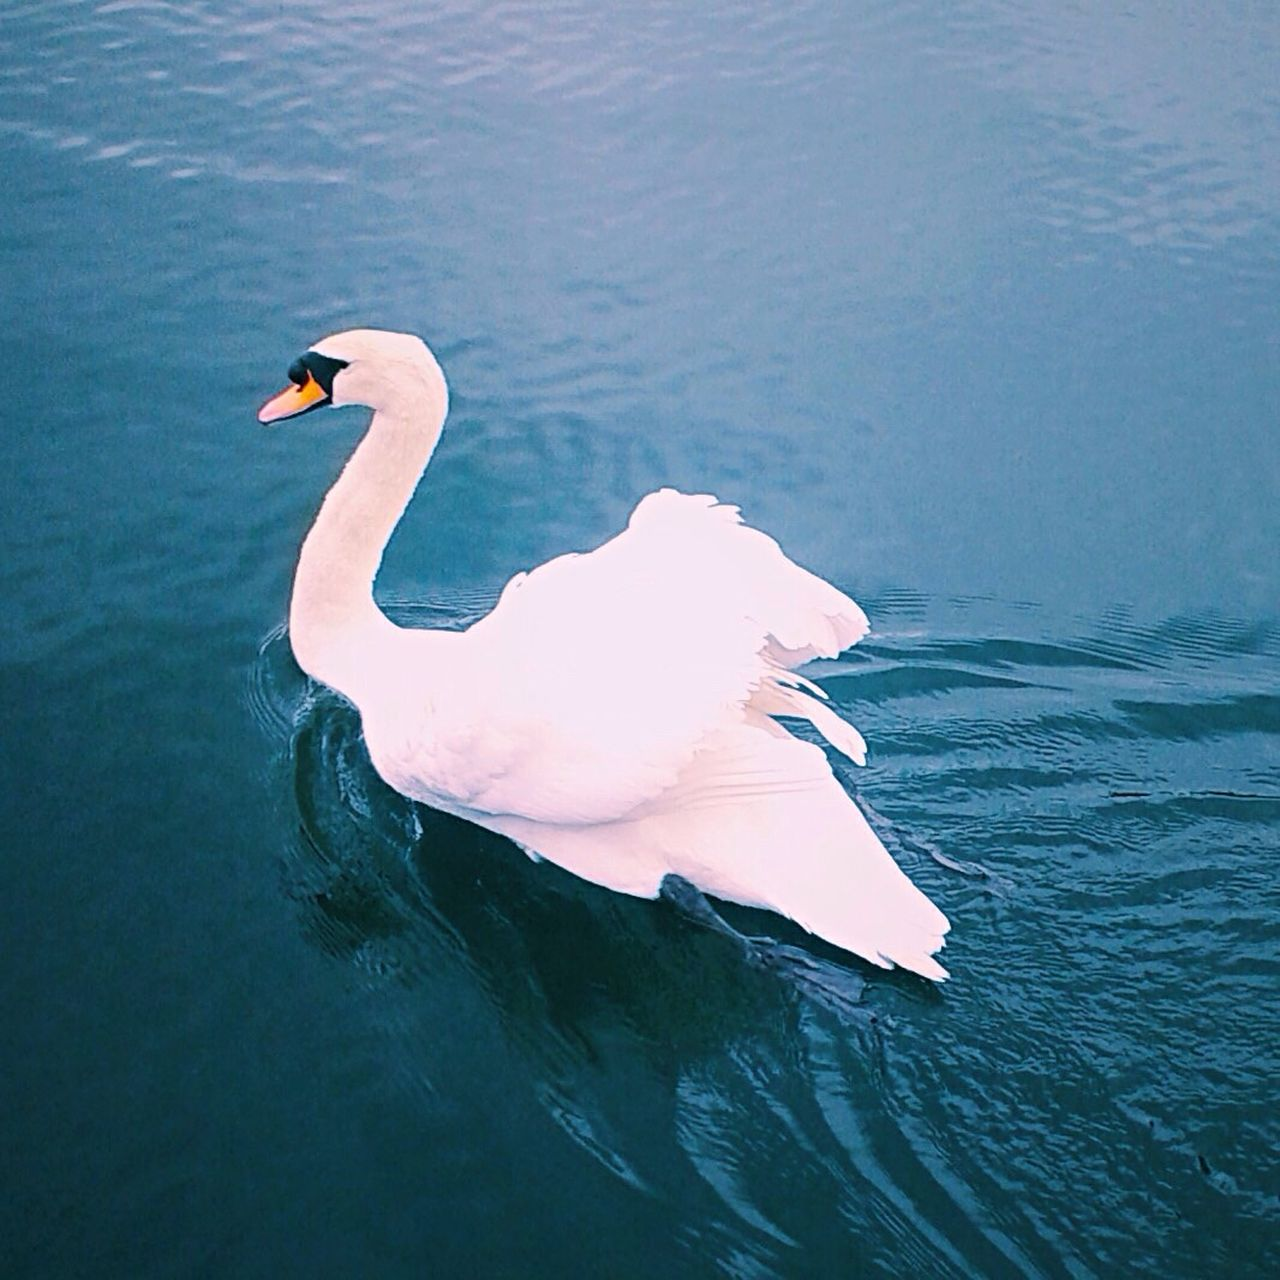 water, one animal, waterfront, animal themes, lake, animals in the wild, swan, day, nature, bird, outdoors, no people, animal wildlife, swimming, beauty in nature